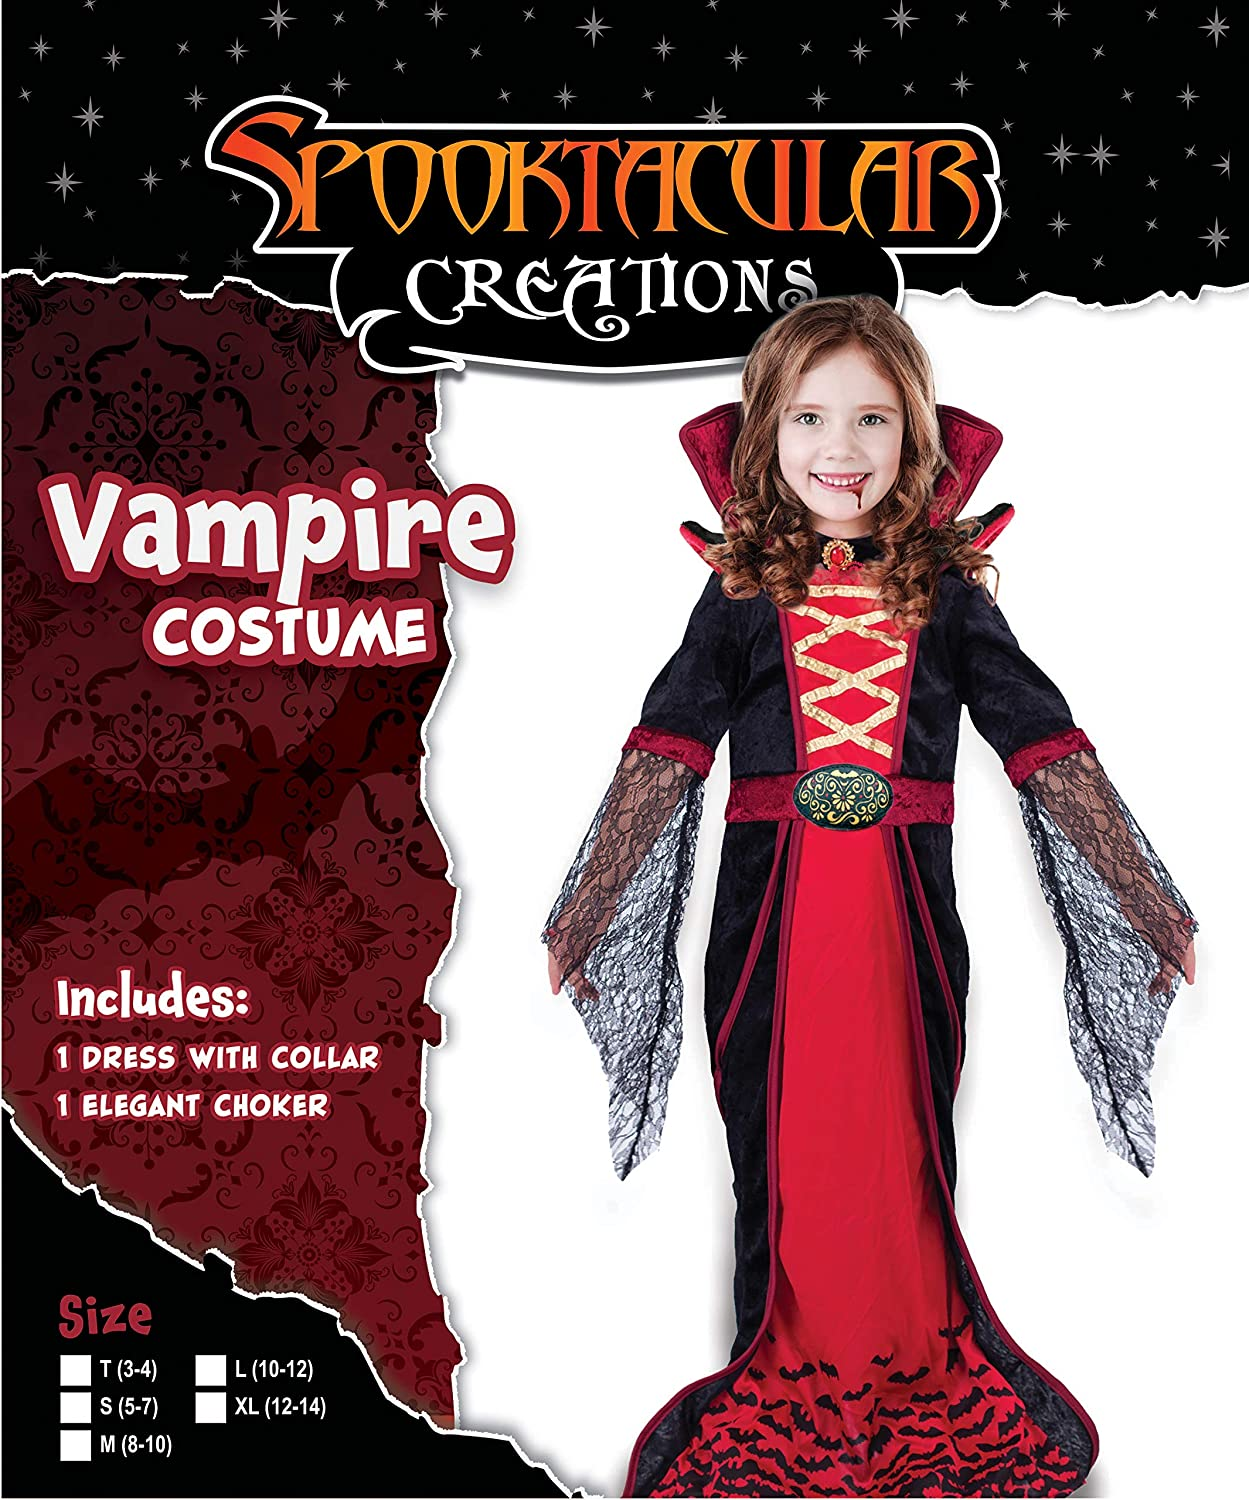 11202139c3956 Royal Vampire Costume for Girls Deluxe Set Halloween Gothic Victorian  Vampiress Queen Dress Up Party